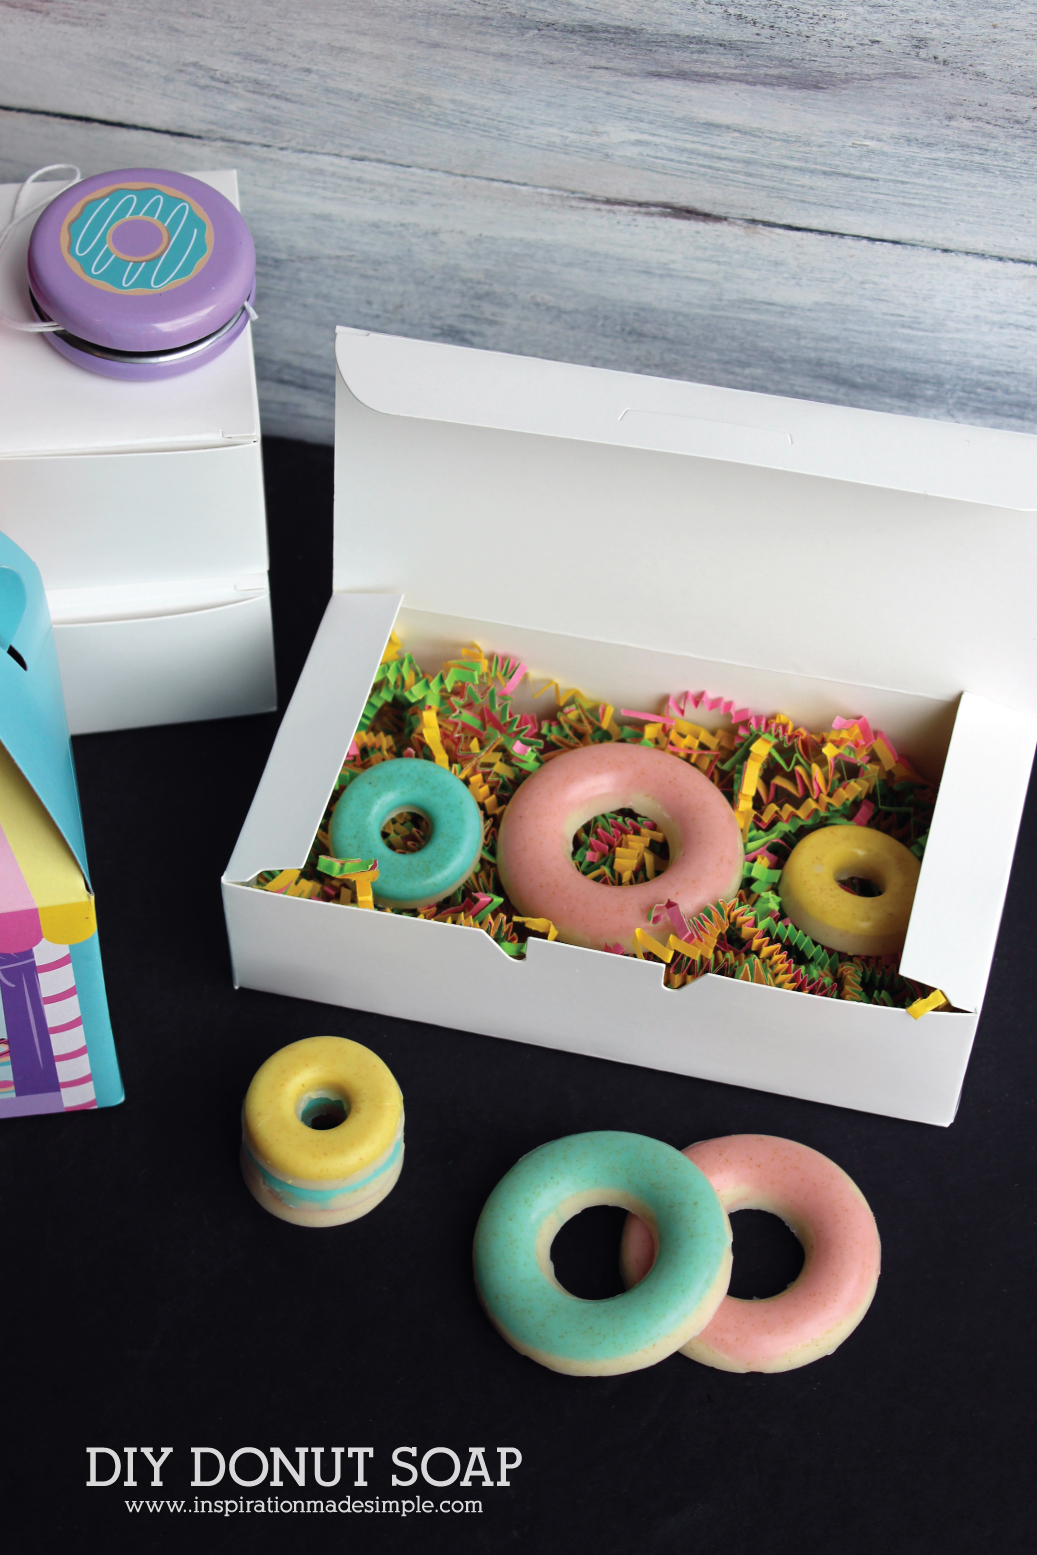 DIY Donut Soap Party Favor